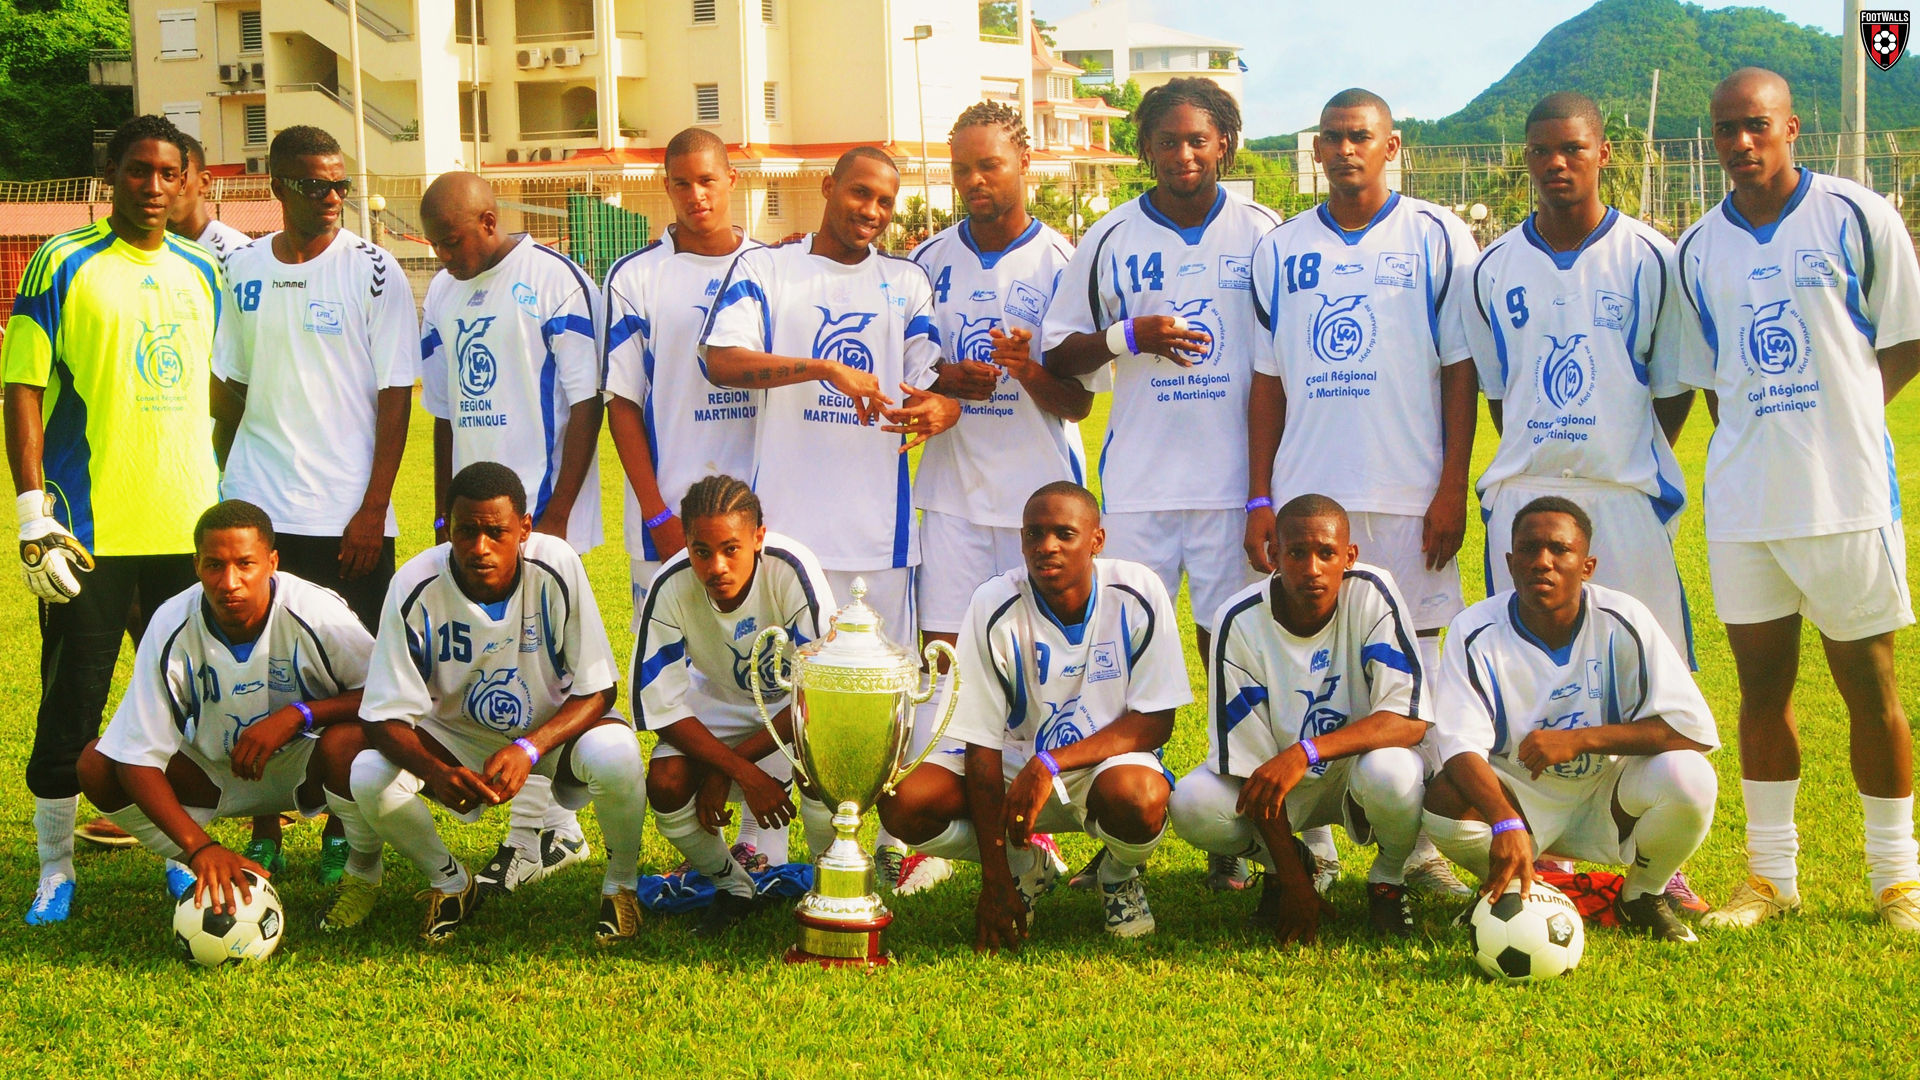 martinique wallpapers   national teams   football wallpapers